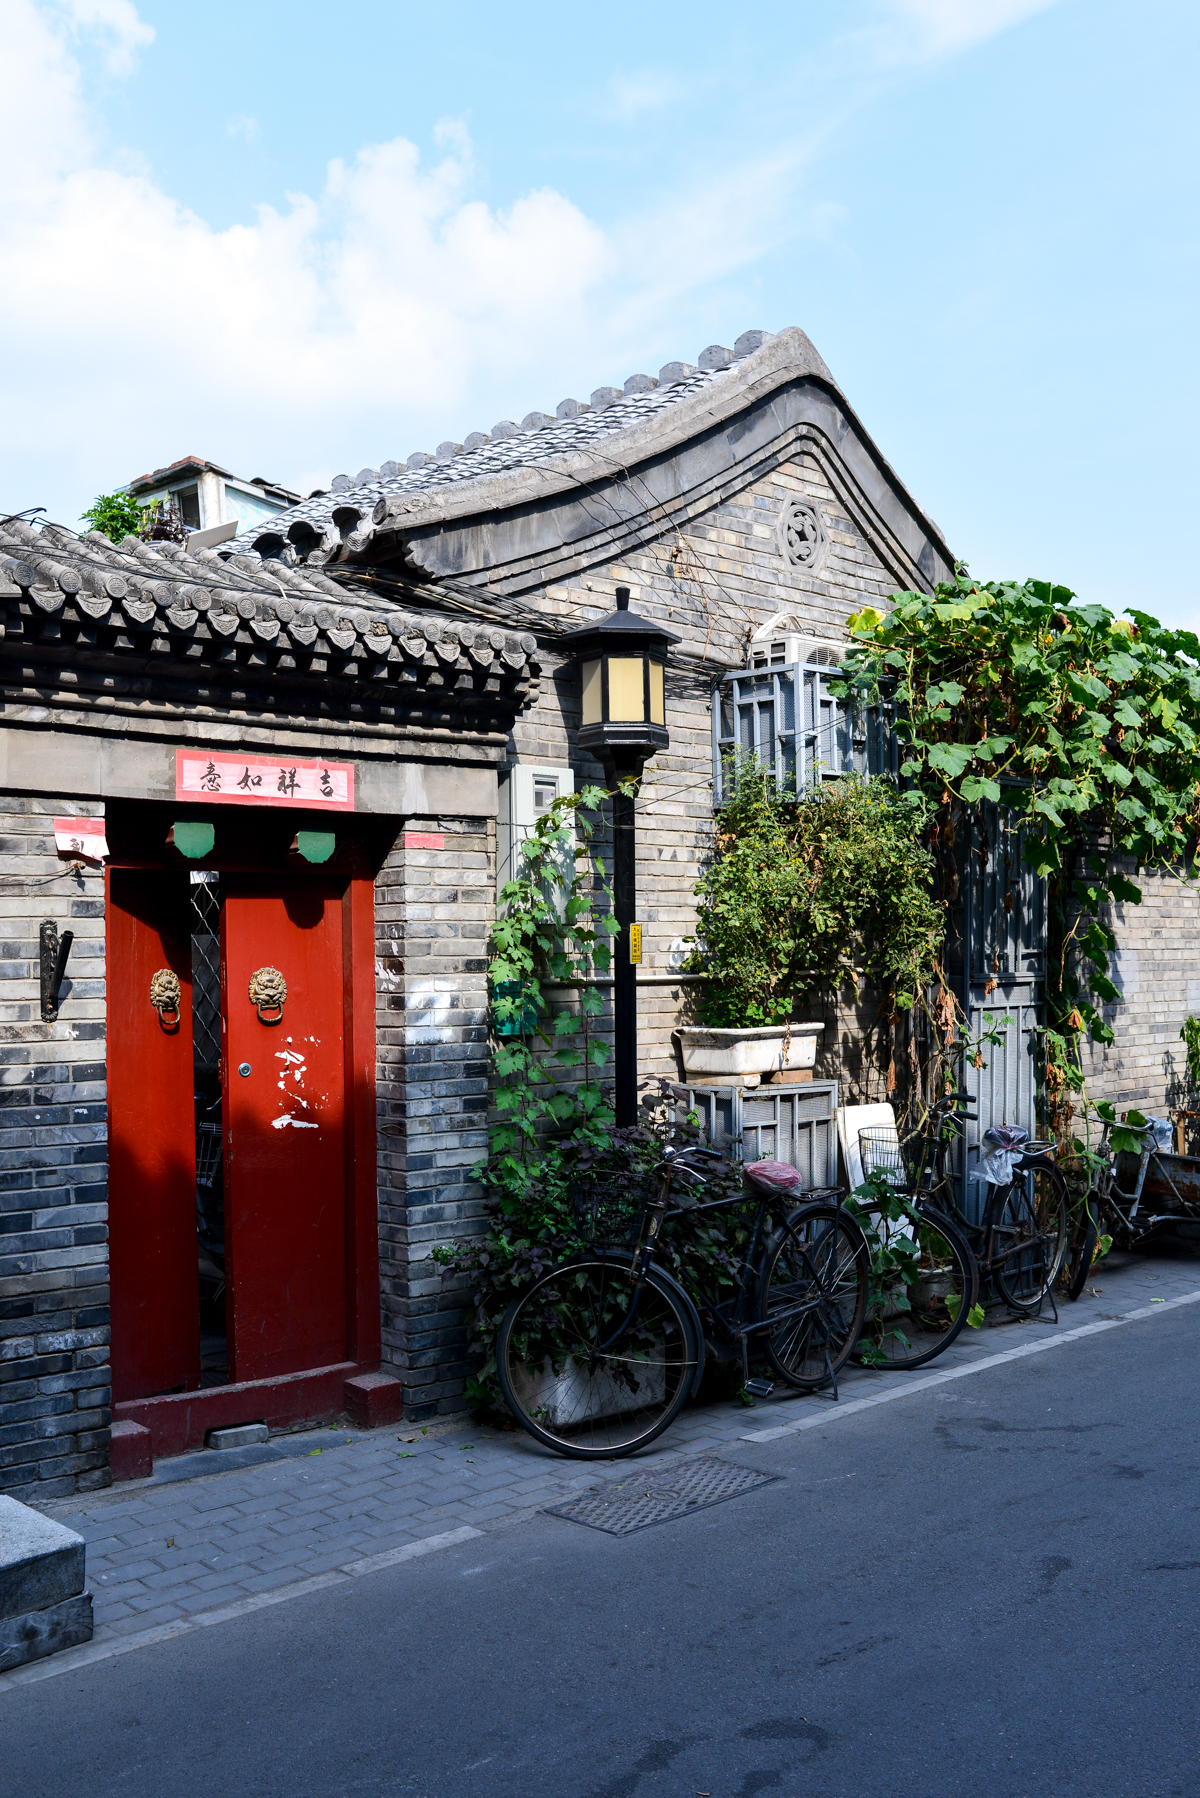 Stacie-Flinner-Opposite-House- Beijing-54